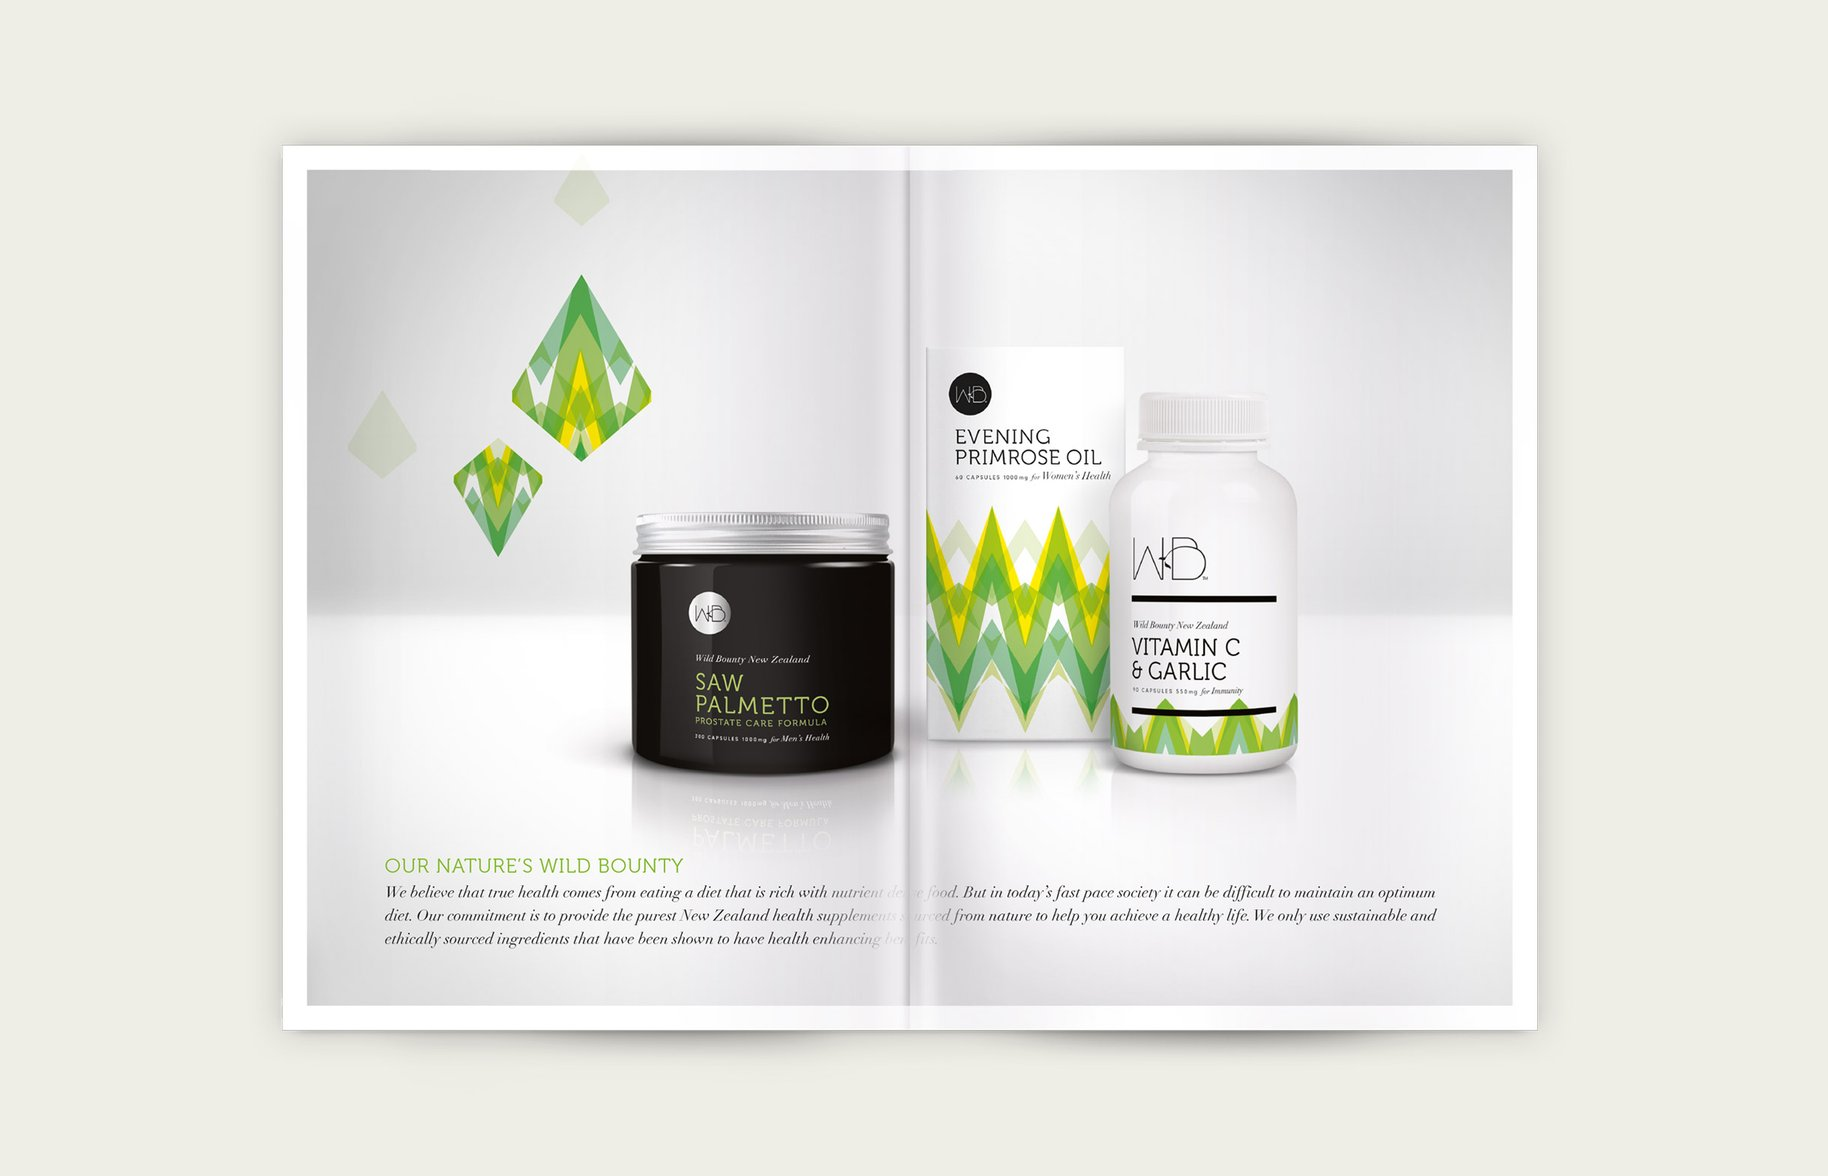 Wild Bounty product range booklet design